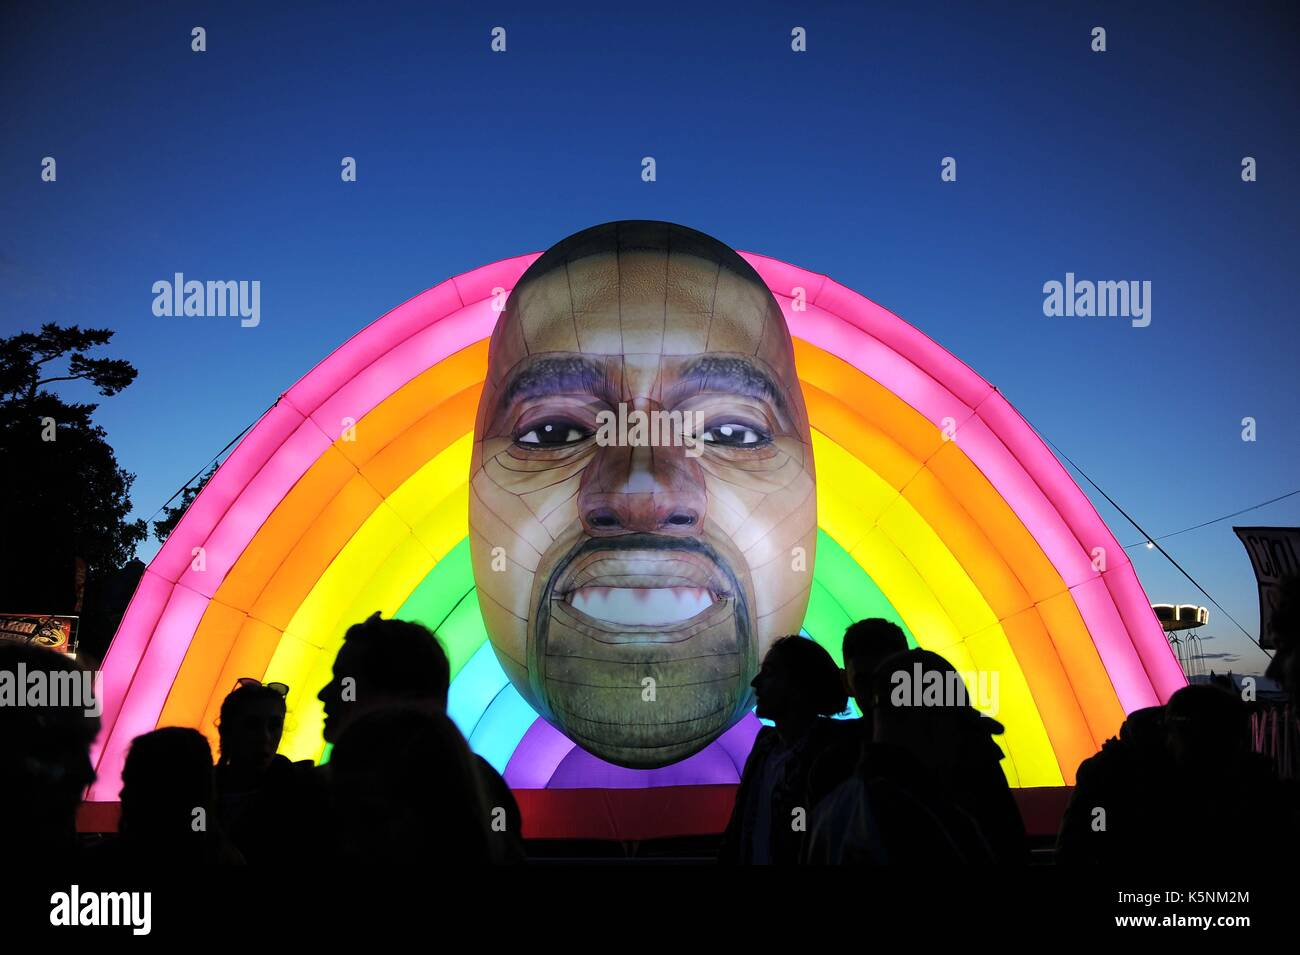 Inflatable Kanye West at Bestival Music Festival. Inflatable Kanye West Credit: Finnbarr Webster/Alamy Live News Stock Photo